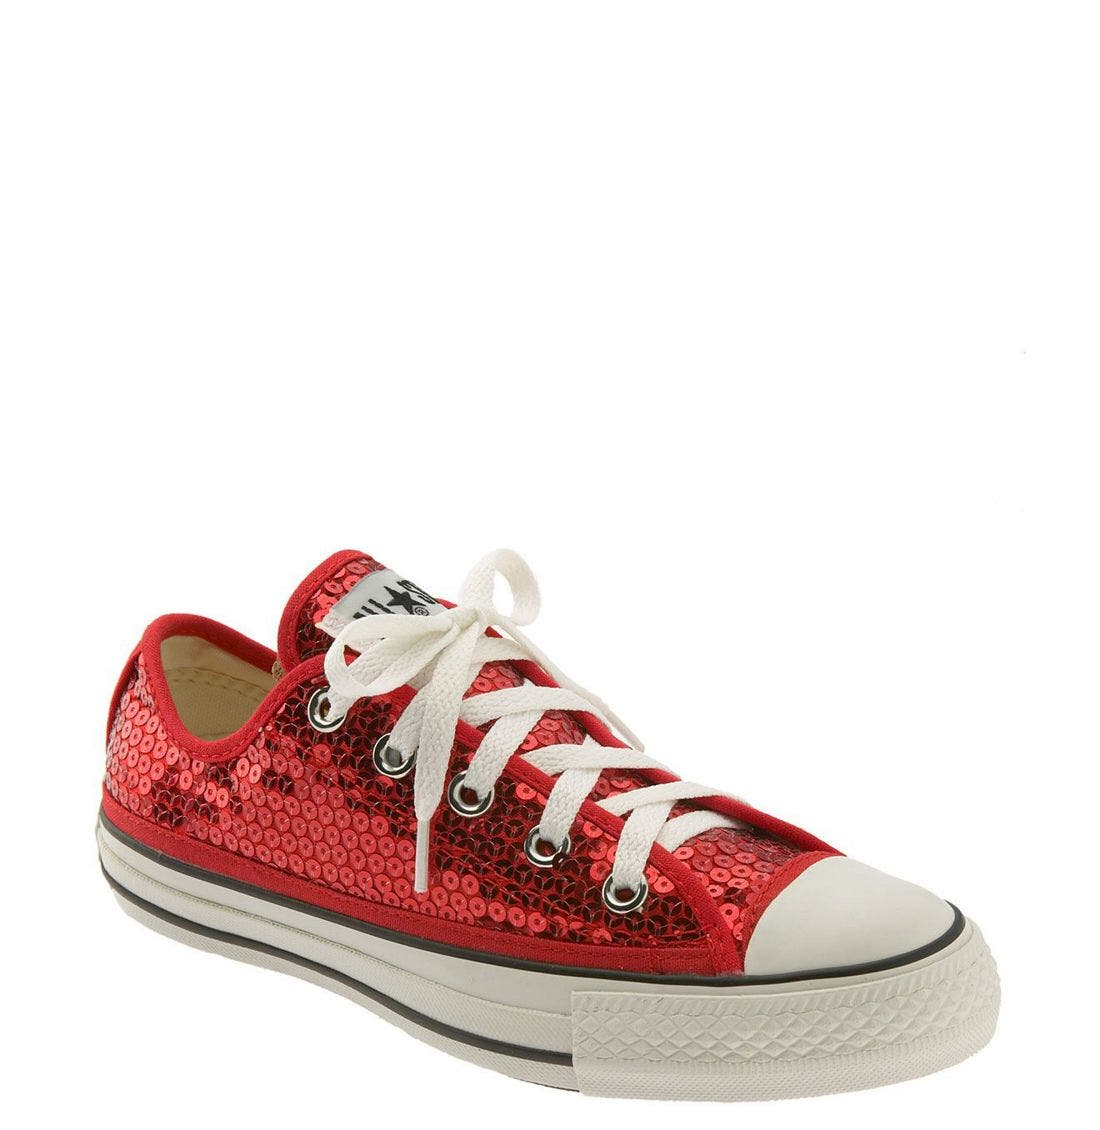 Alternate Image 1 Selected - Converse Chuck Taylor® Sequined Sneaker (Women)